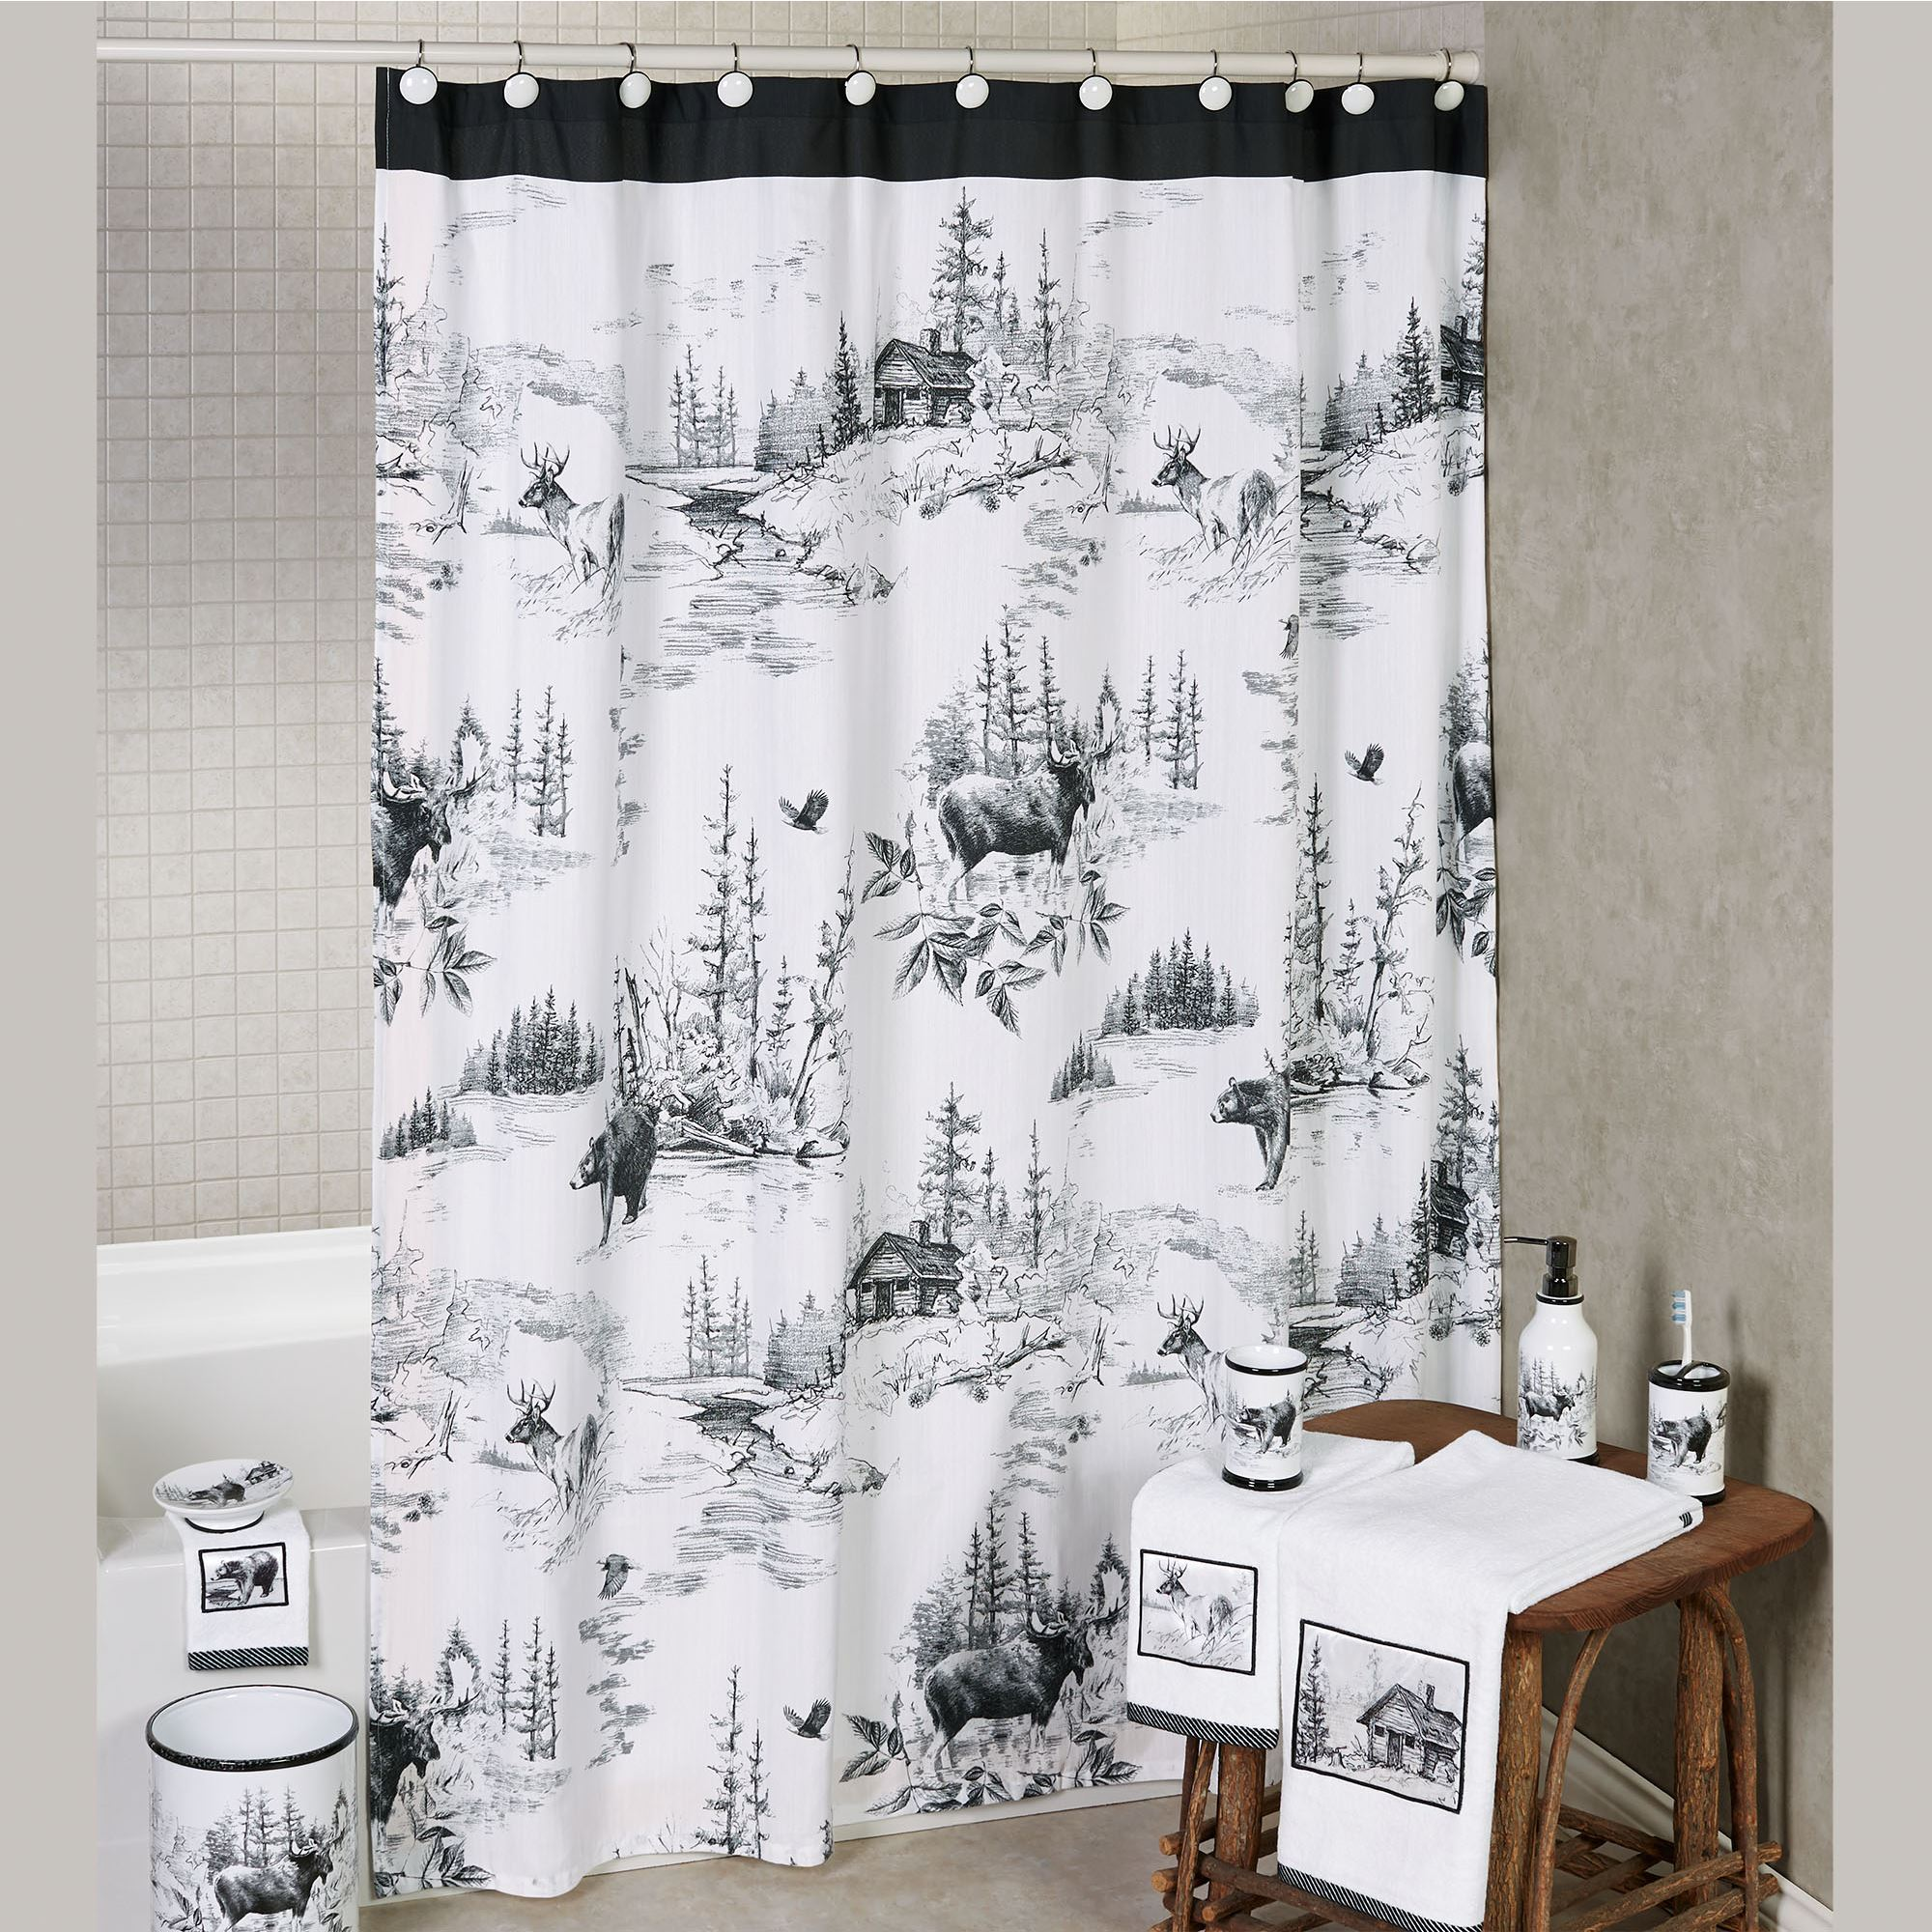 Sketches Shower Curtain Black White 72 X